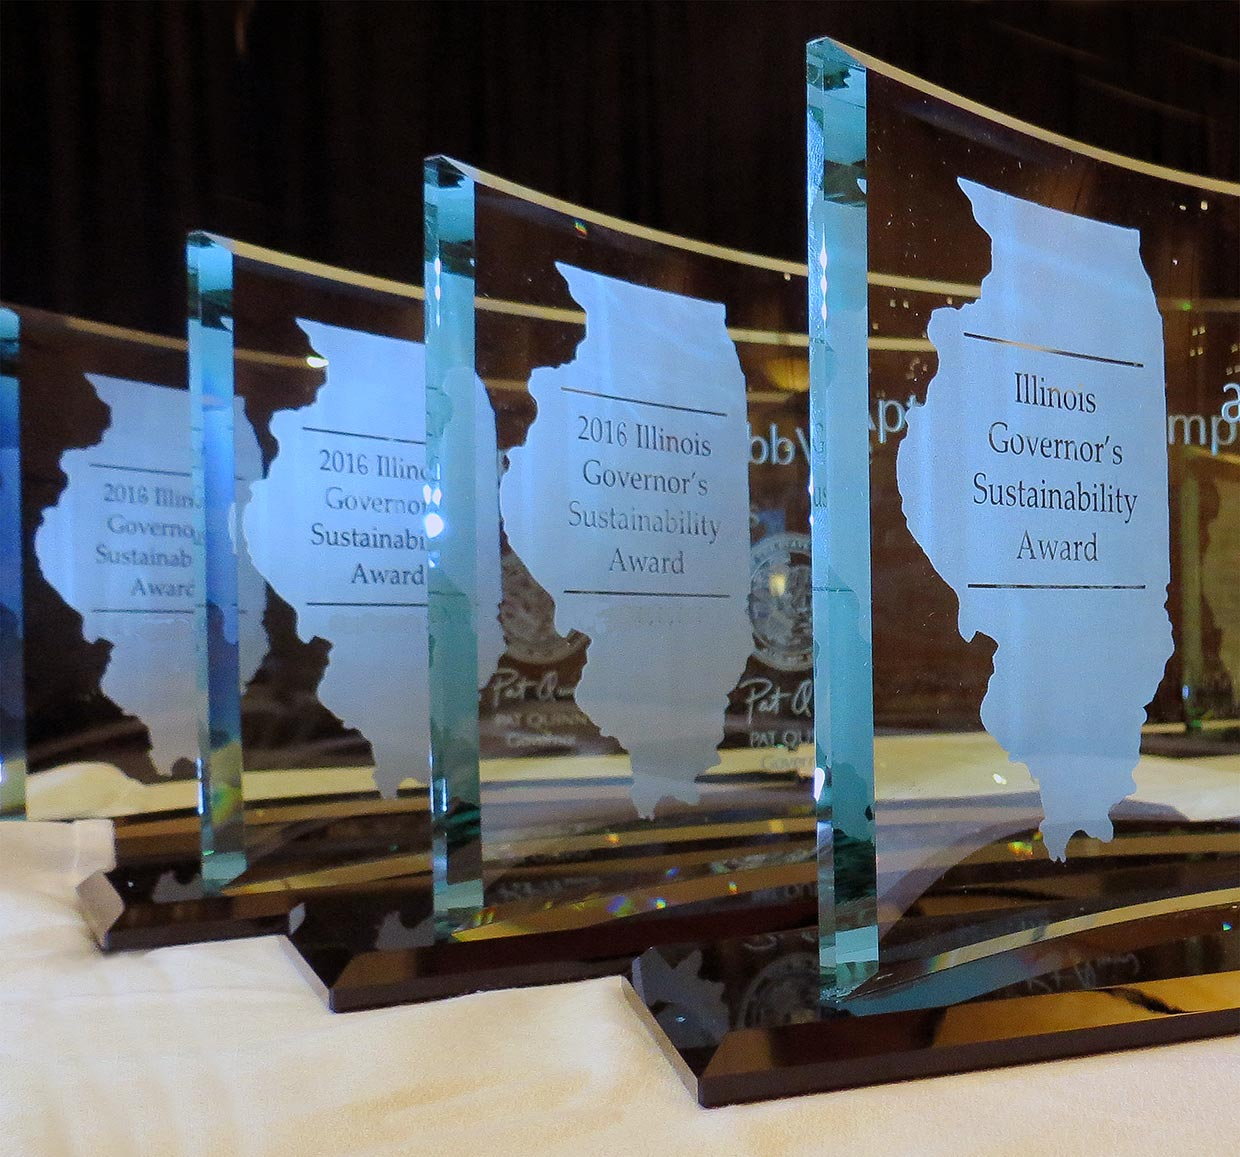 Illinois Governor's Sustainability Award trophies